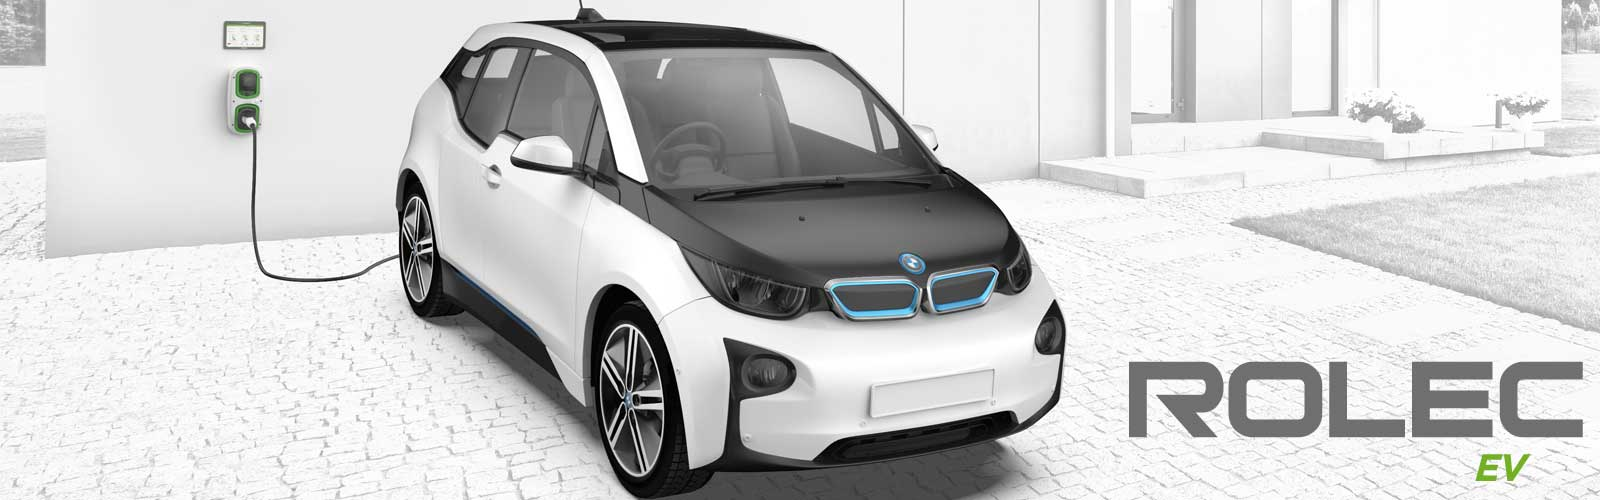 Rolec Electric Vehicle Installers